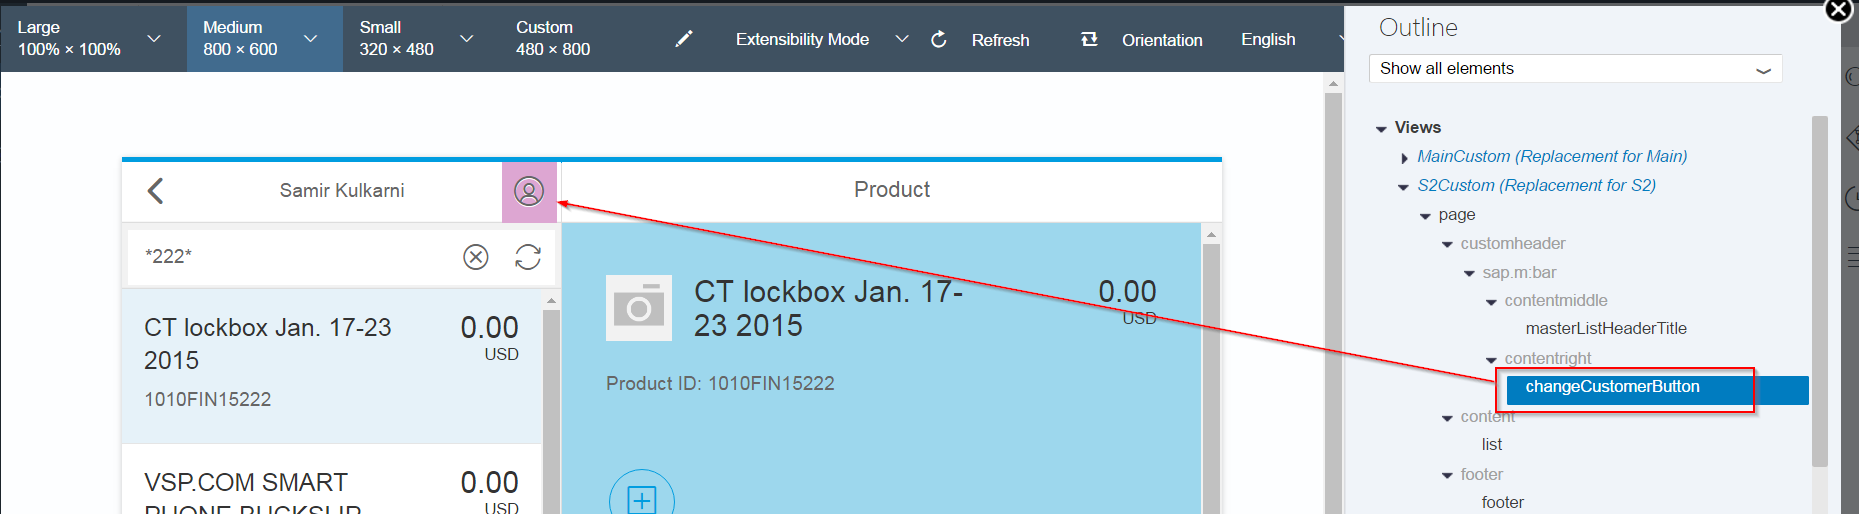 SAP Fiori UI Extension: Adding a custom fragment to make UI changes